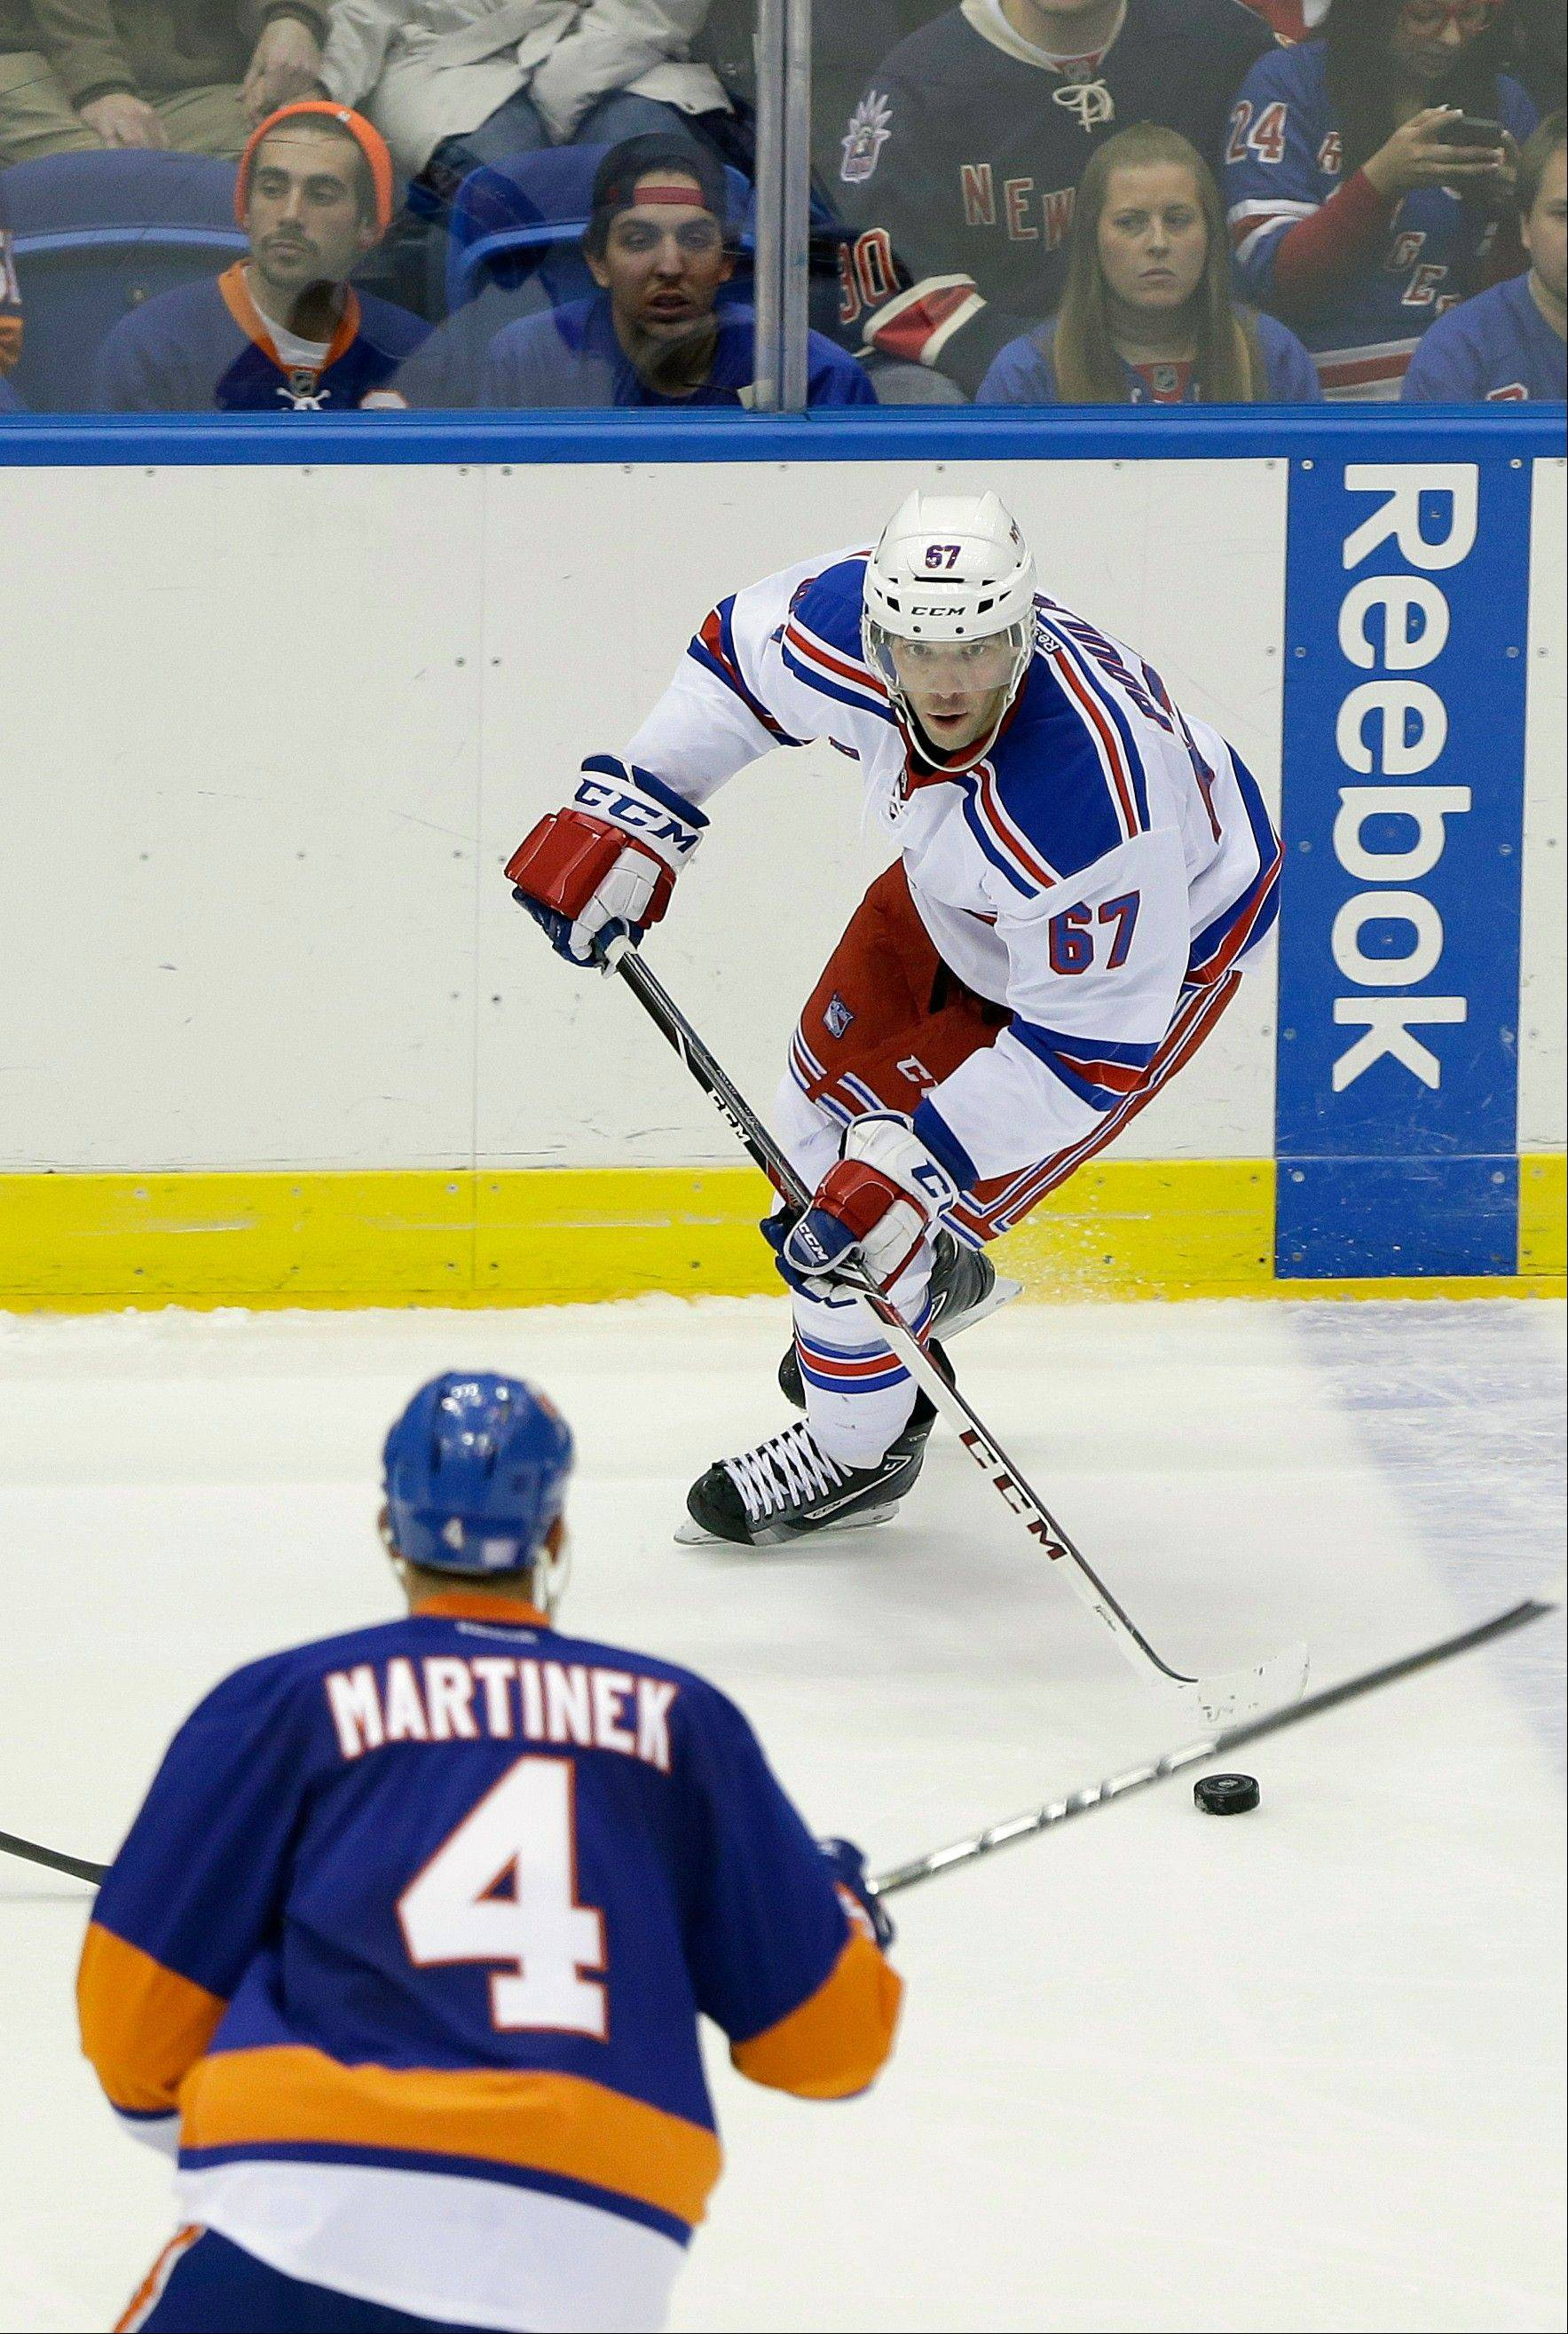 New York Rangers' Benoit Pouliot (67) looks to pass away as New York Islanders' Radek Martinek (4) skates in during the third period of an NHL hockey game Tuesday, in Uniondale, N.Y. The Rangers won the game 3-2.